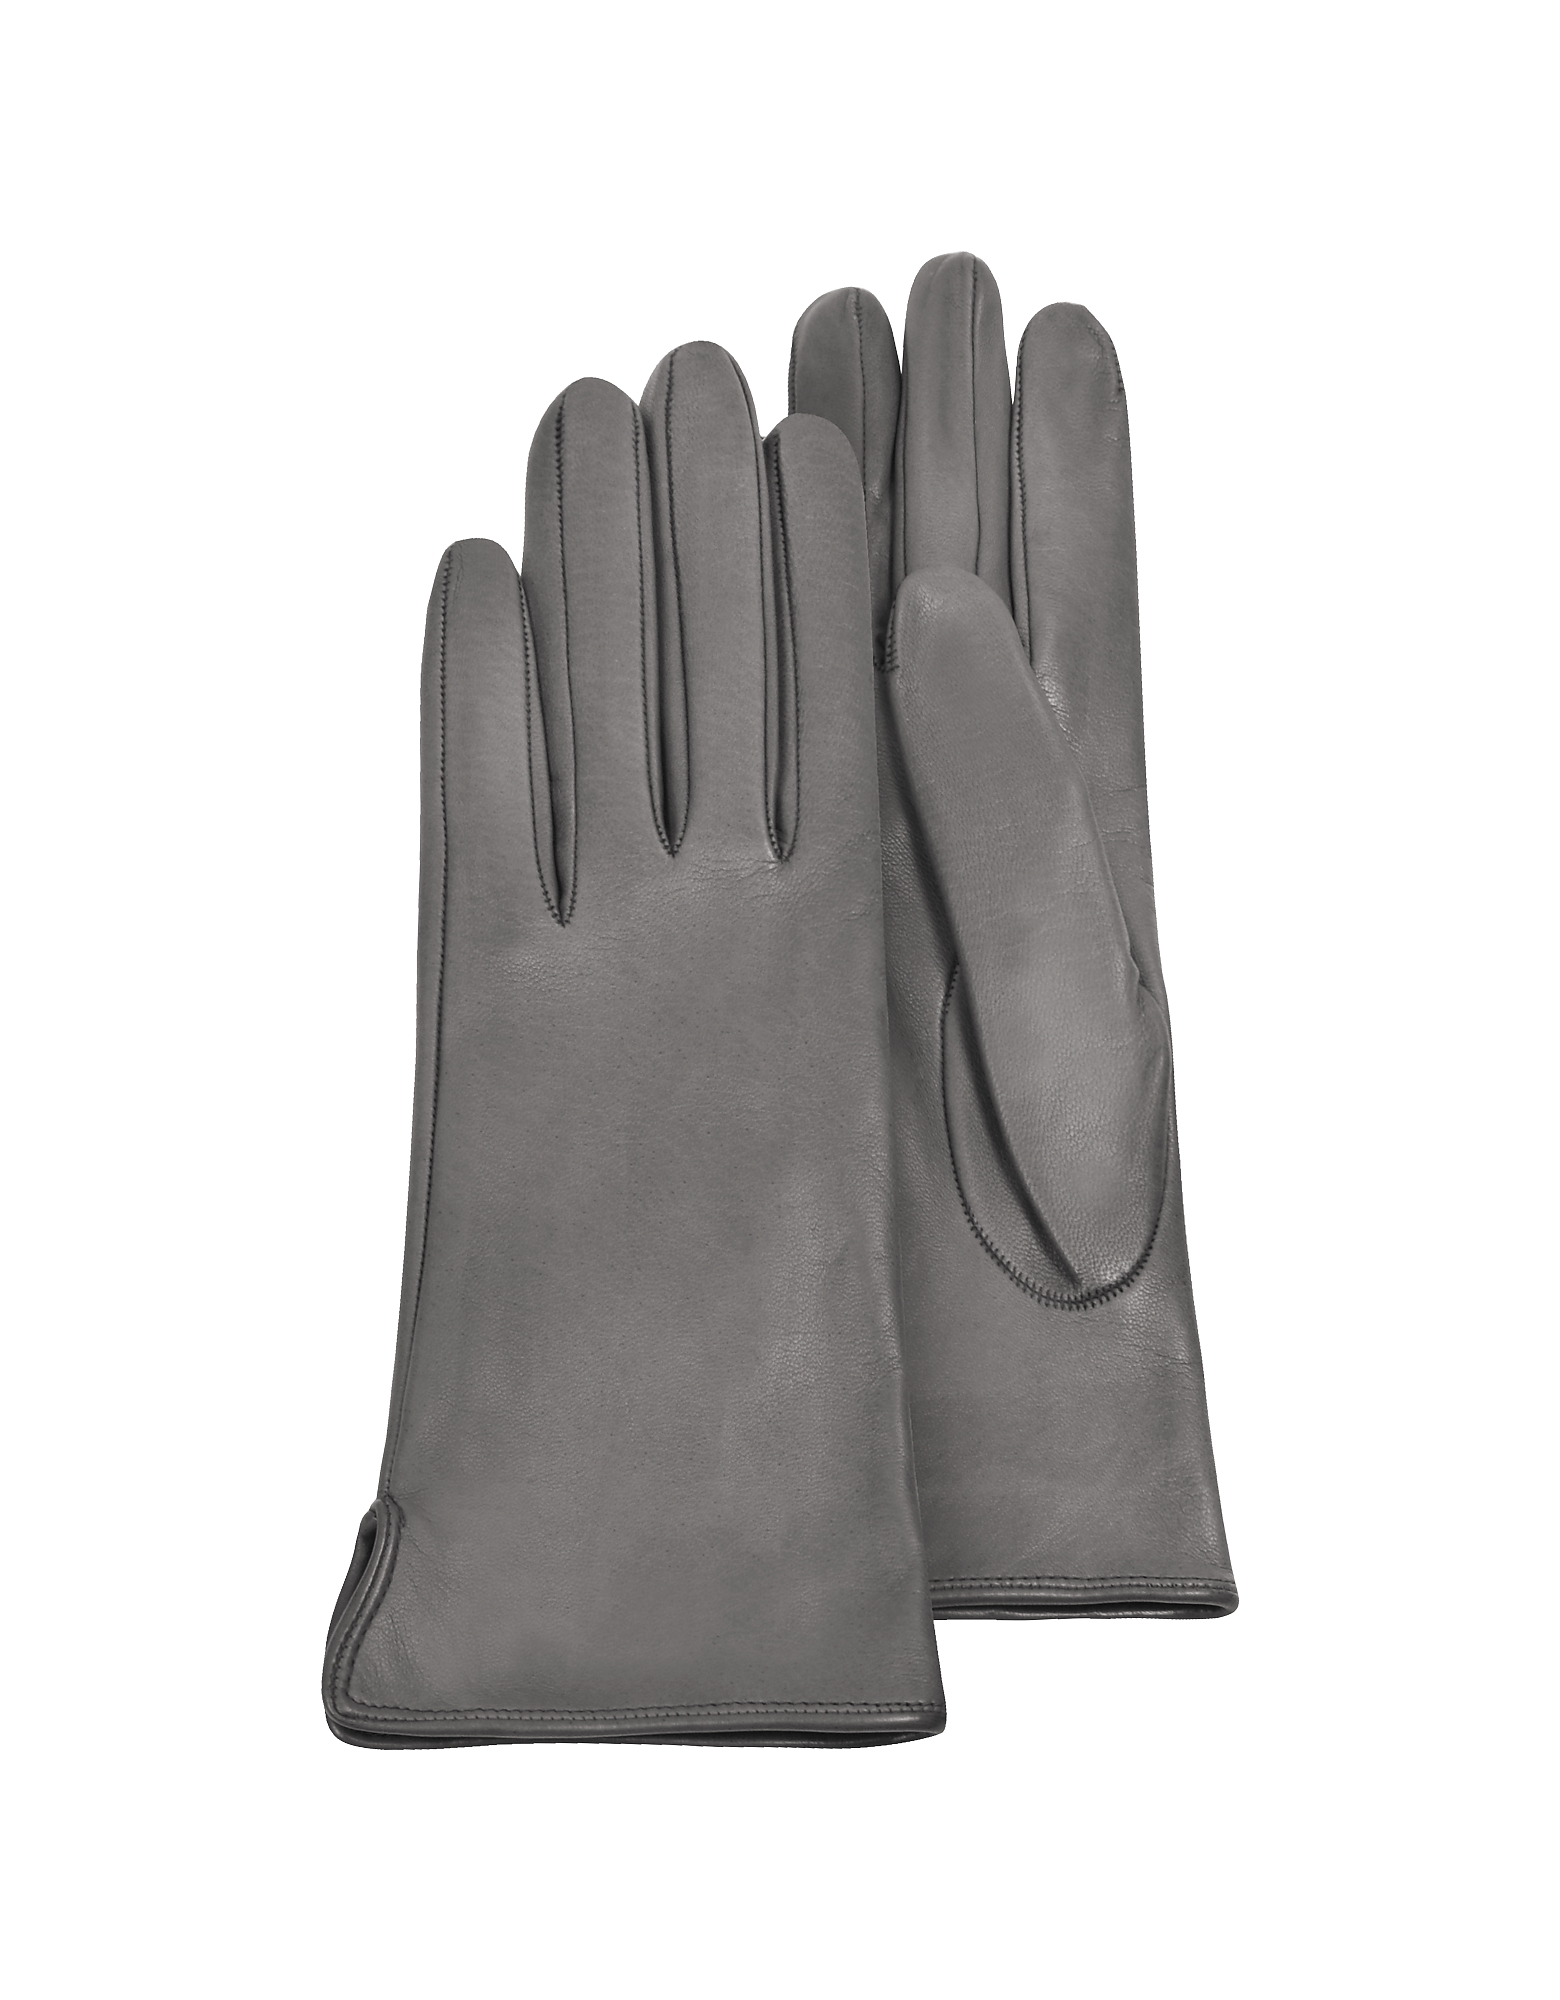 Forzieri Designer Women's Gloves, Women's Gray Calf Leather Gloves w/ Silk Lining